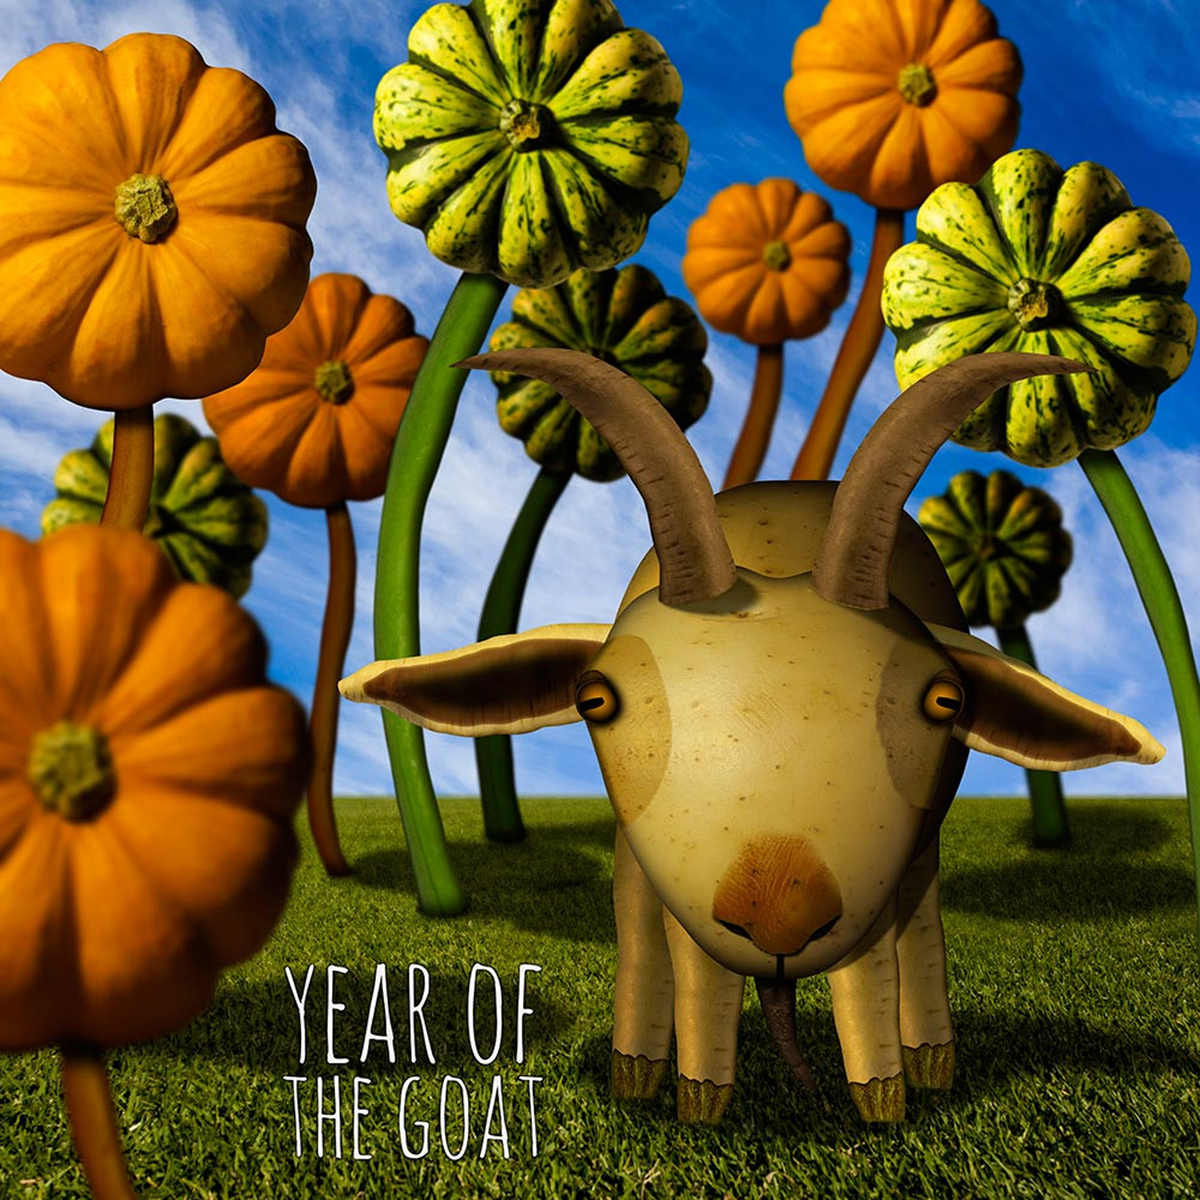 Carrie Webster - The Year of the Sheep